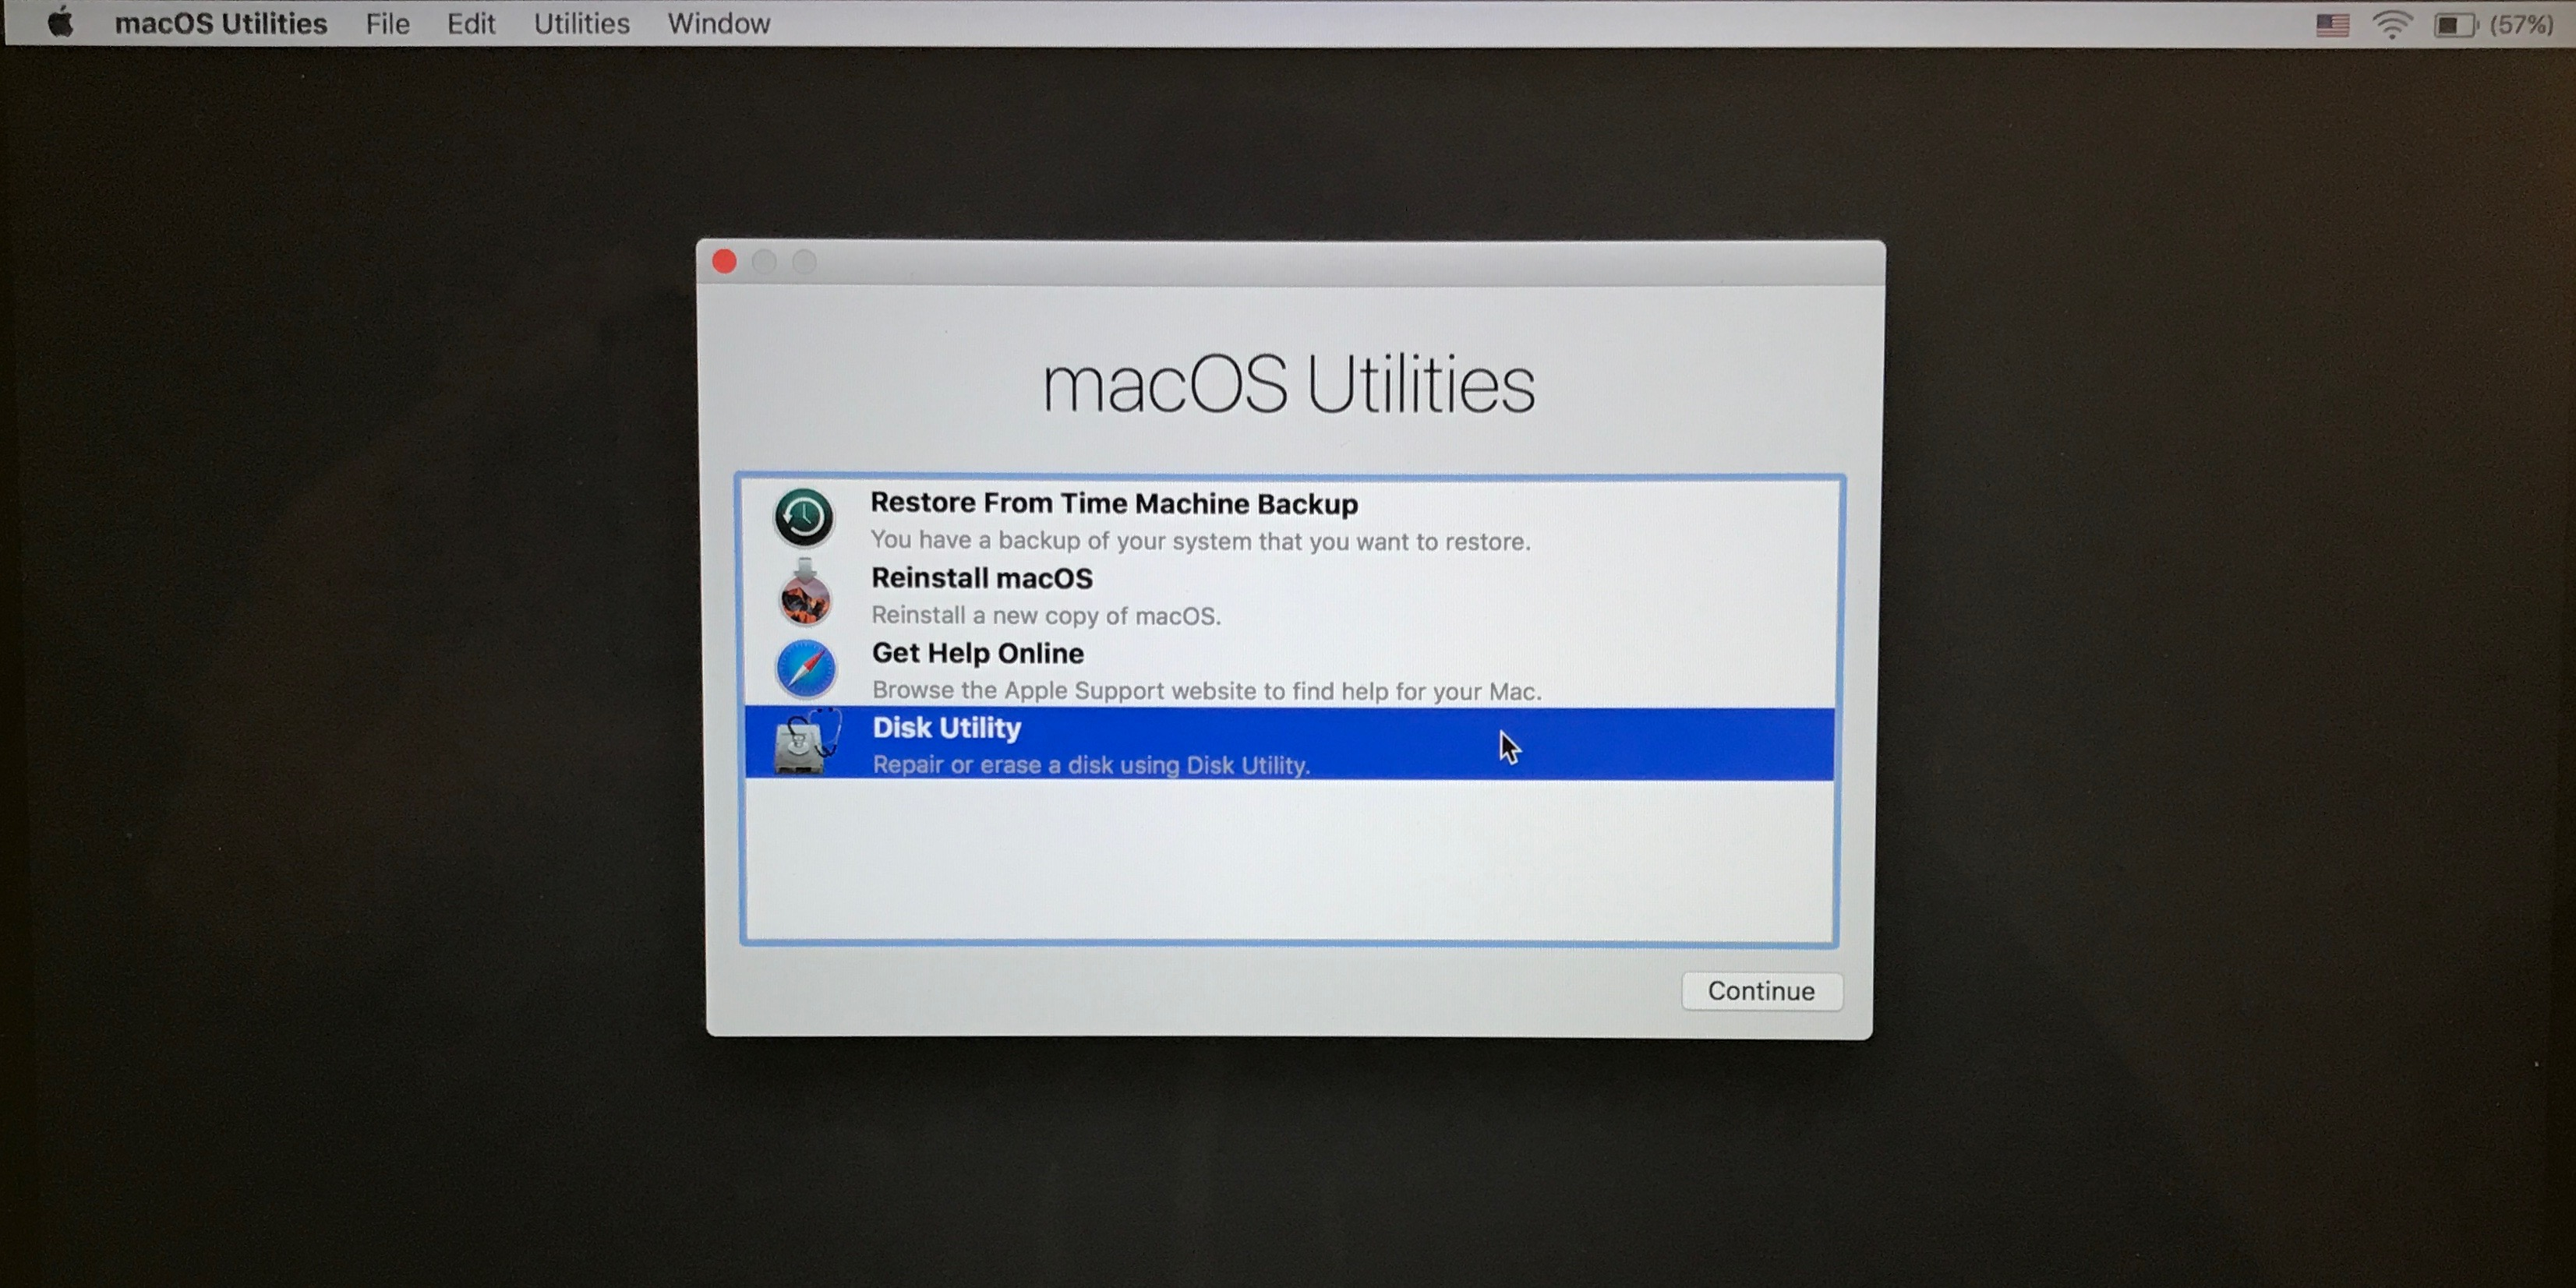 Image of macOS Utilities window in macOS Recovery